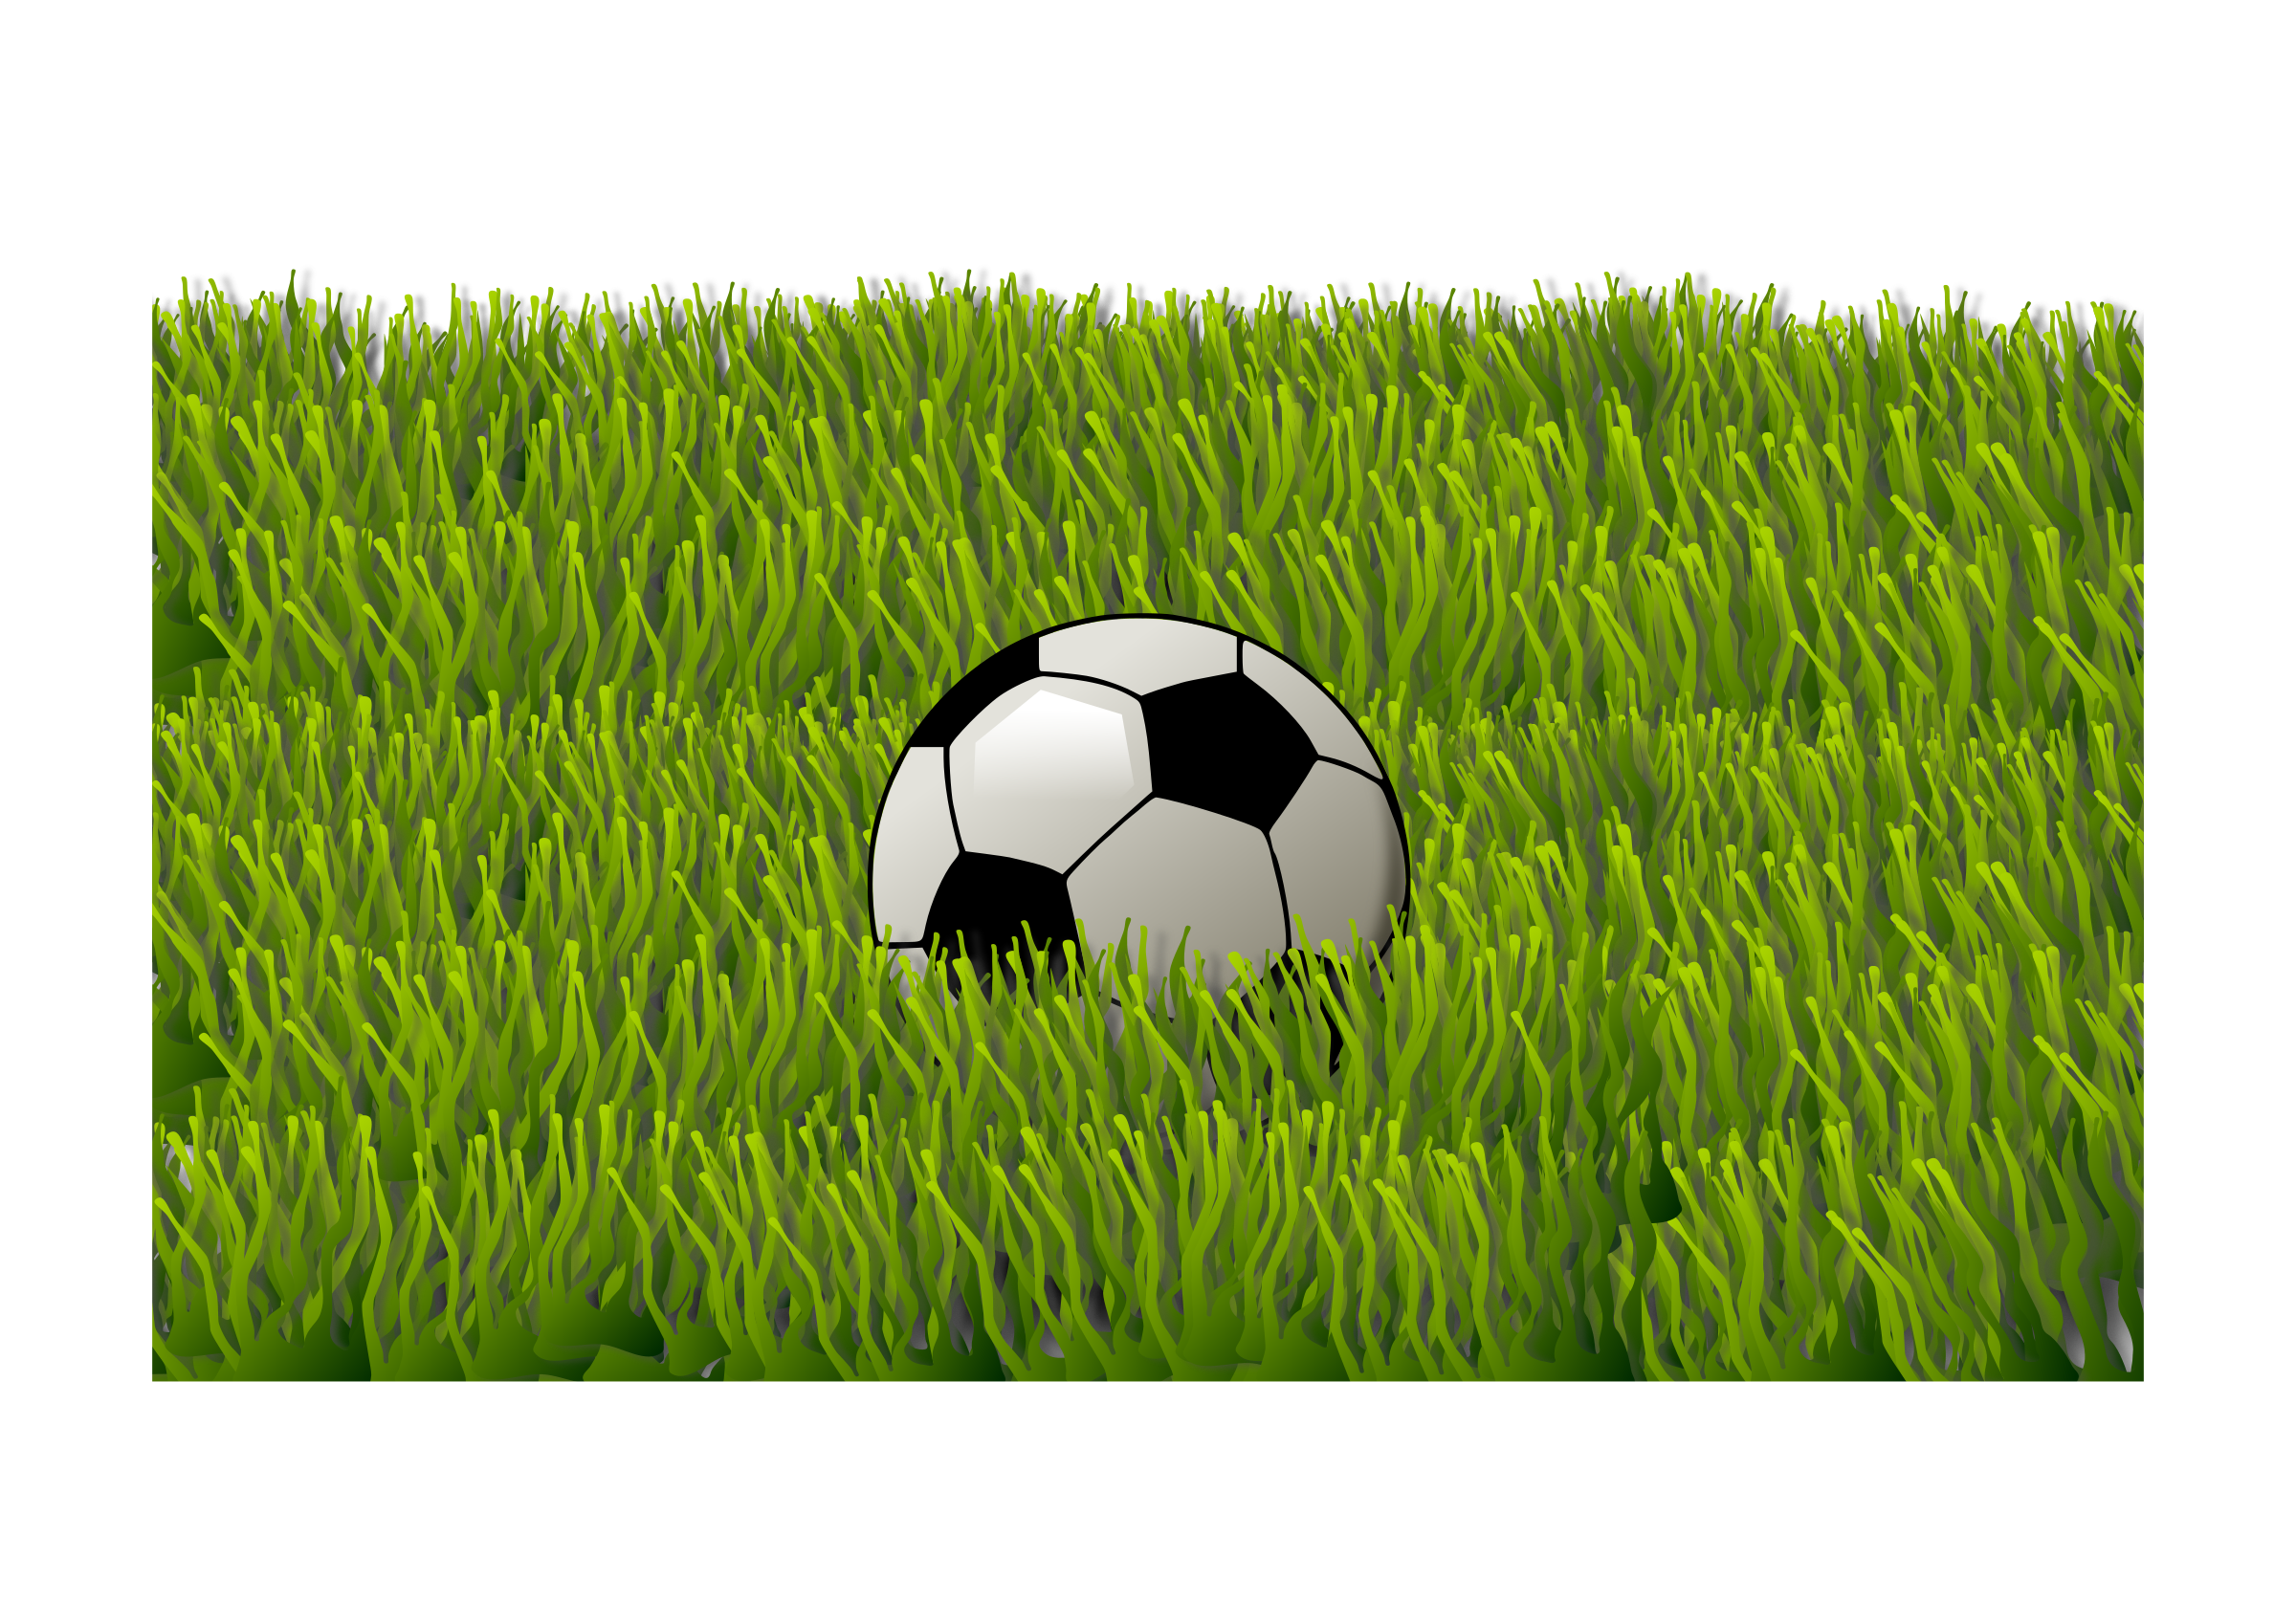 Soccer ball on big. Football field grass clipart